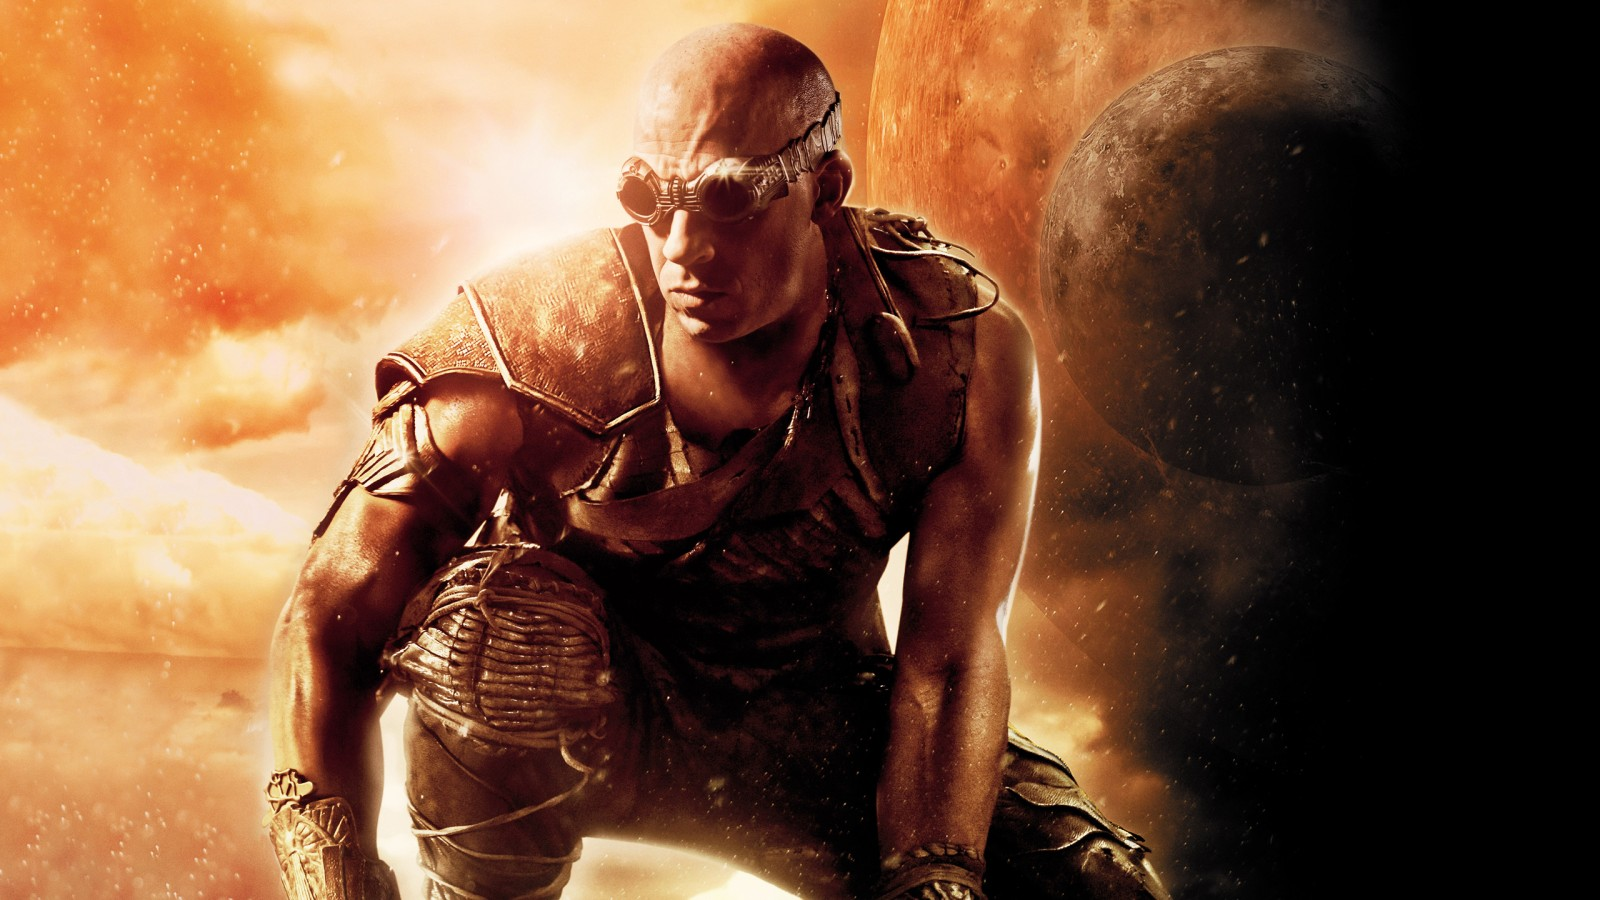 Cute Wallpapers Images Download Vin Diesel Riddick Movie Wallpapers Hd Wallpapers Id